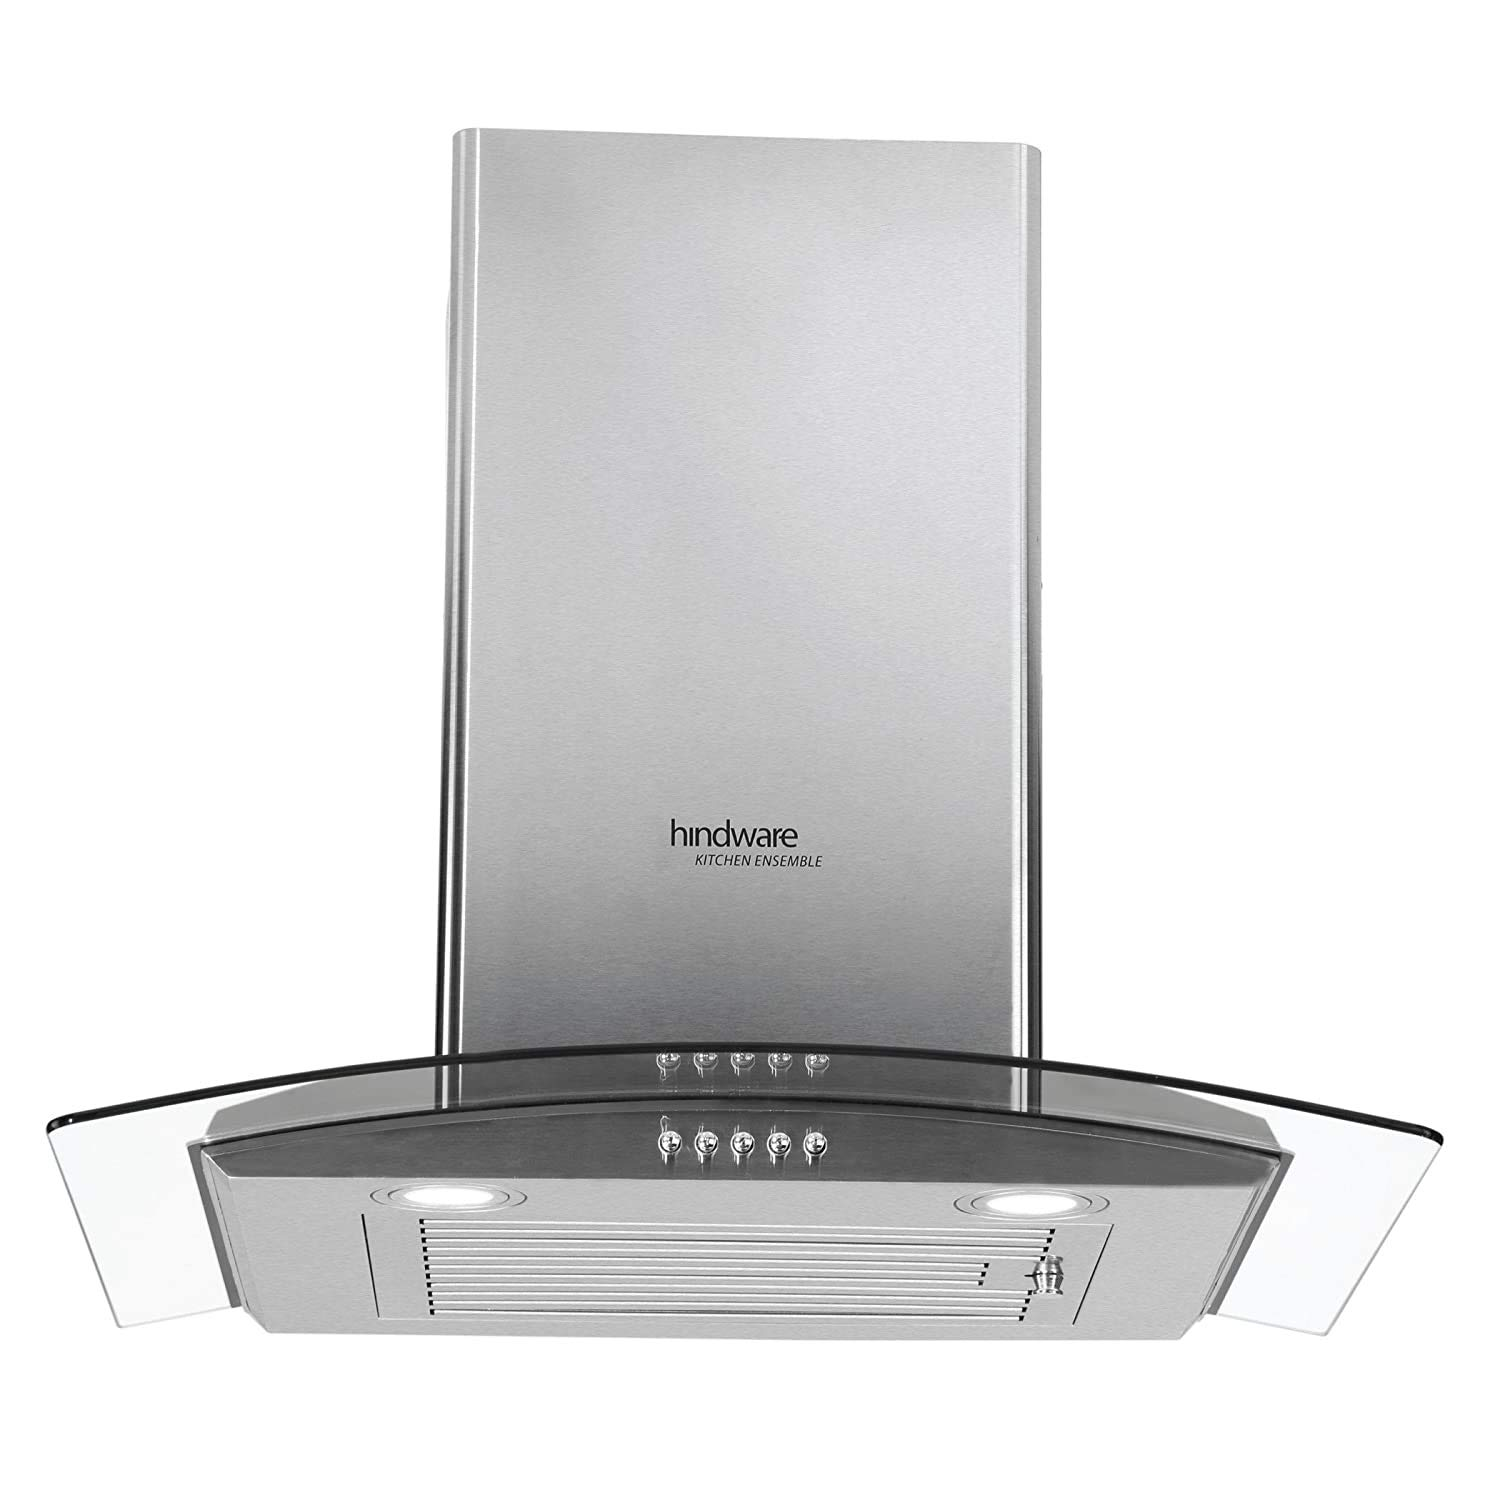 best chimney for indian kitchen 2021